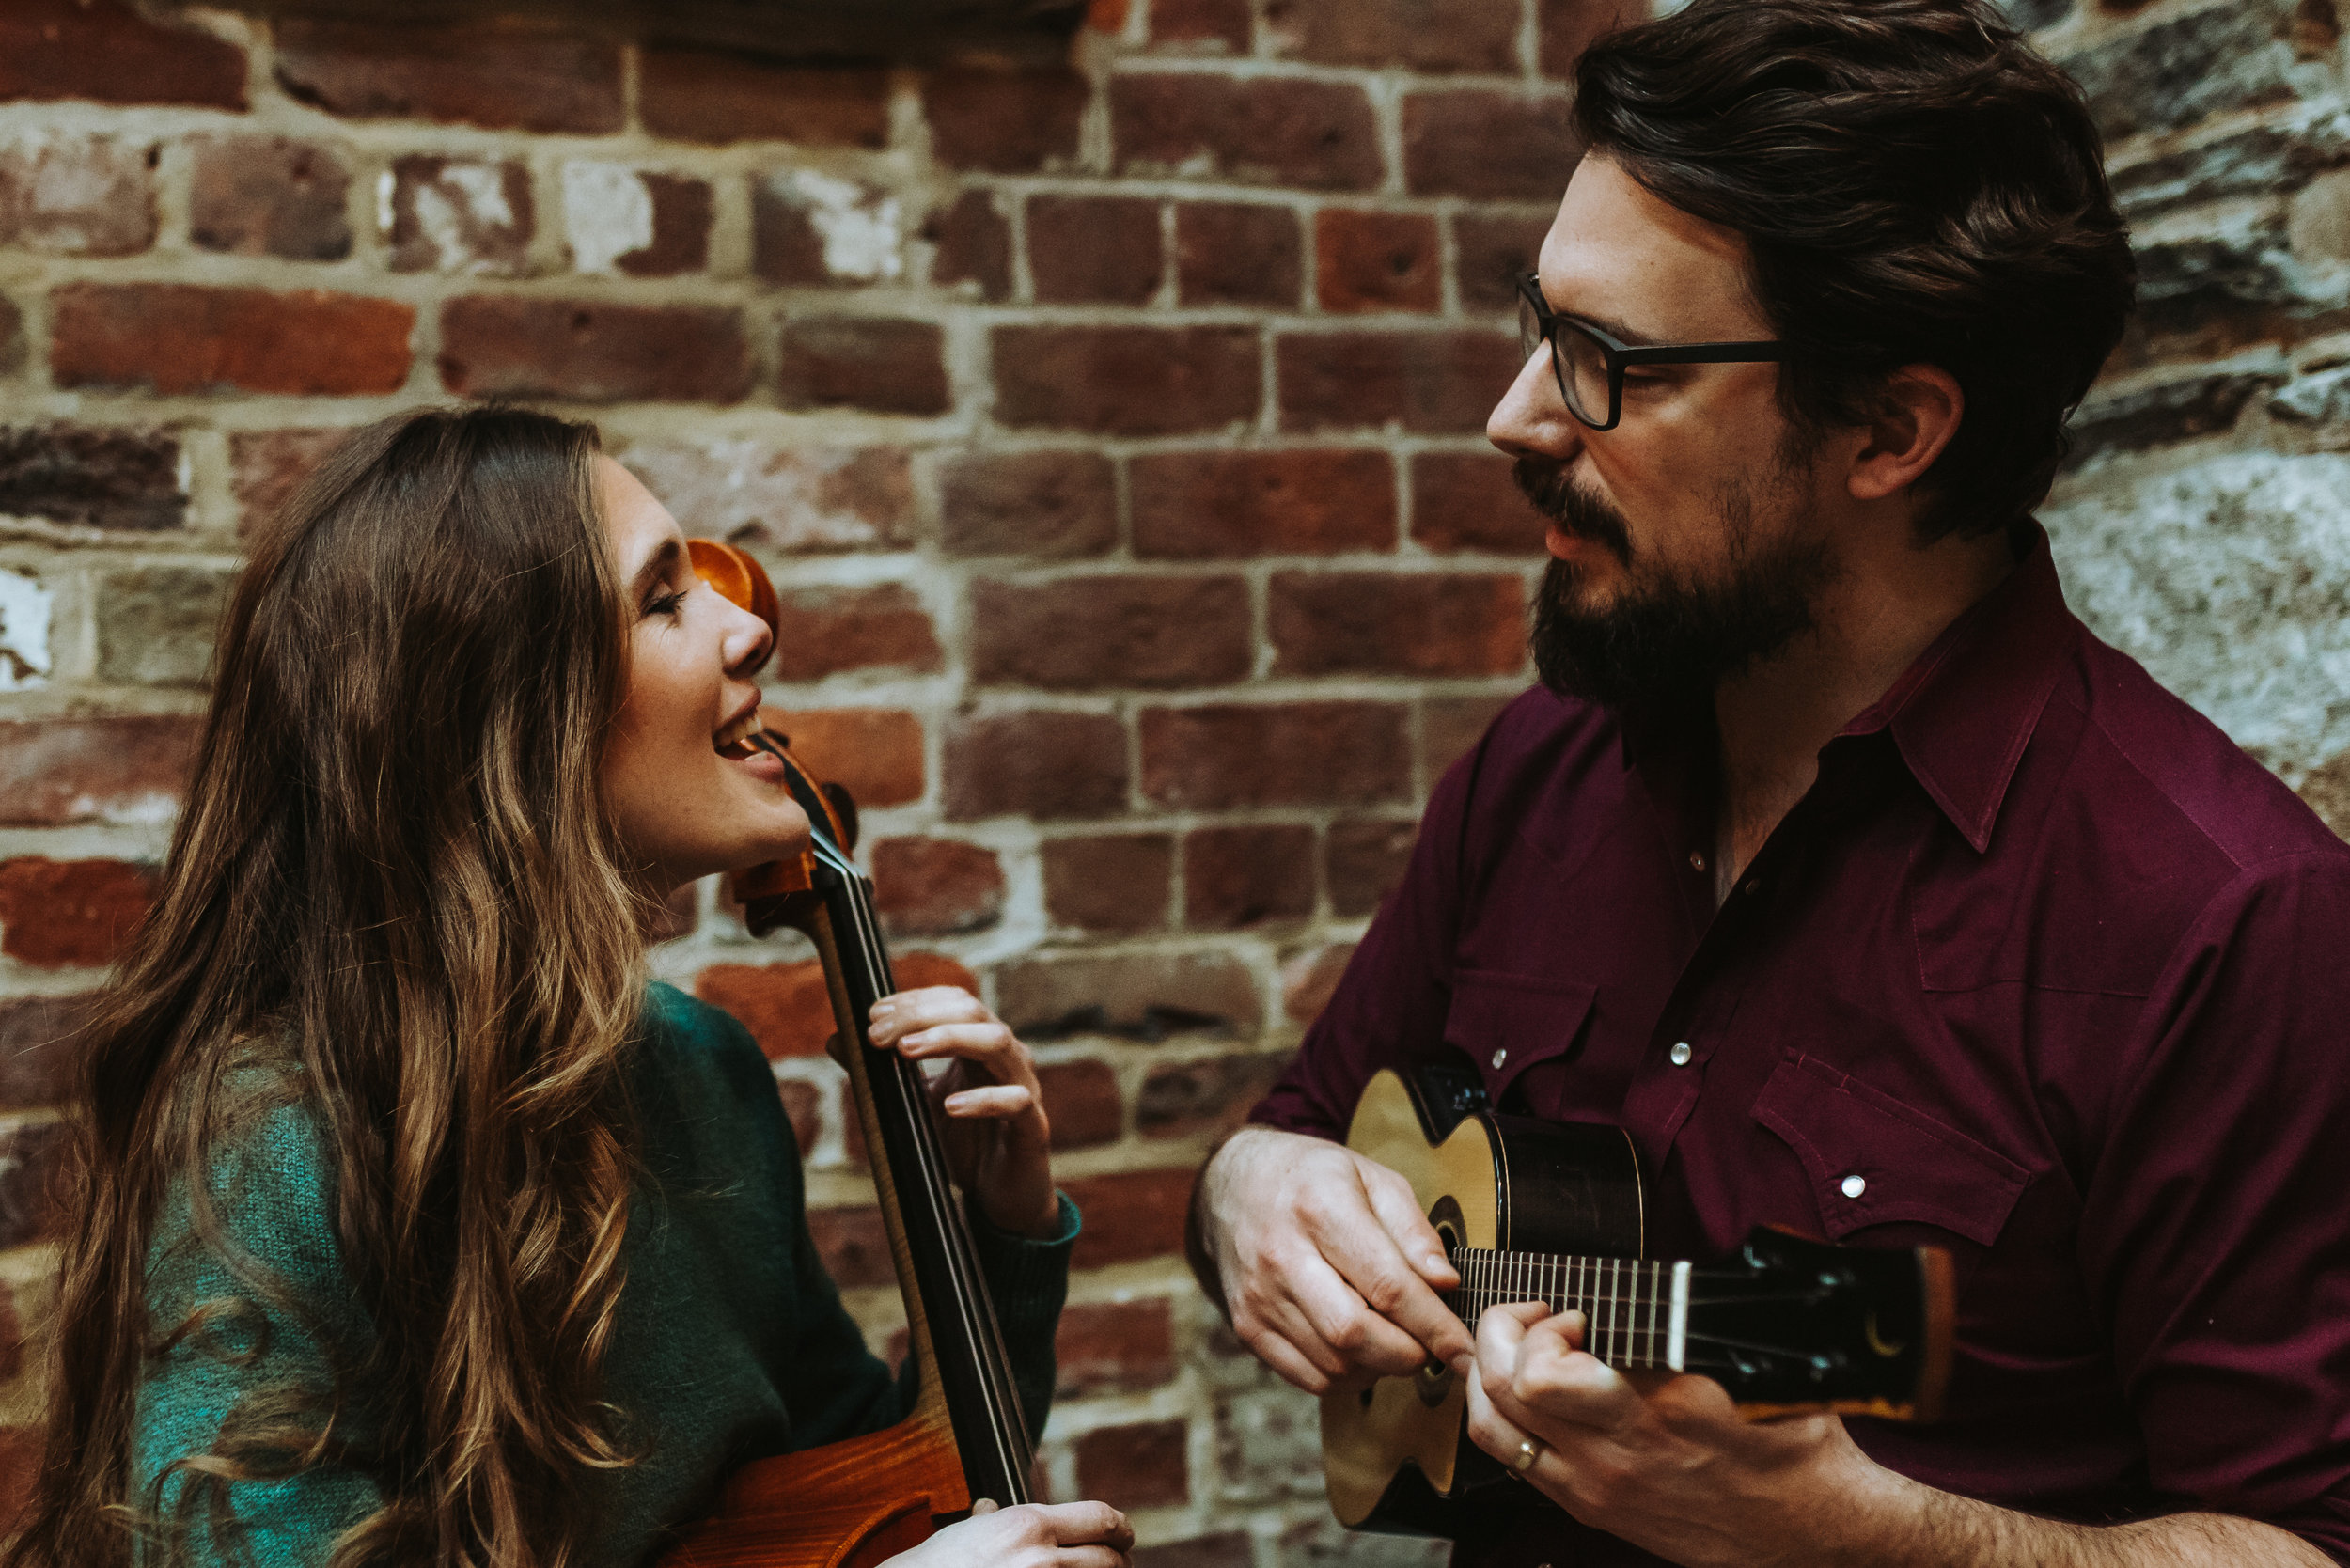 """This is the newly added show (by popular demand) of the cello and uke pair of Janelle and Hill. They have to be heard to be believed. Great musicians, wonderful entertainment in an intimate setting. What more could you ask for?  <a class=""""eventbrite-tix-link"""" href=""""https://www.eventbrite.com/e/james-hill-and-anne-janelle-uke-meets-cello-added-show-tickets-47015366226"""">Buy Tickets</a>"""